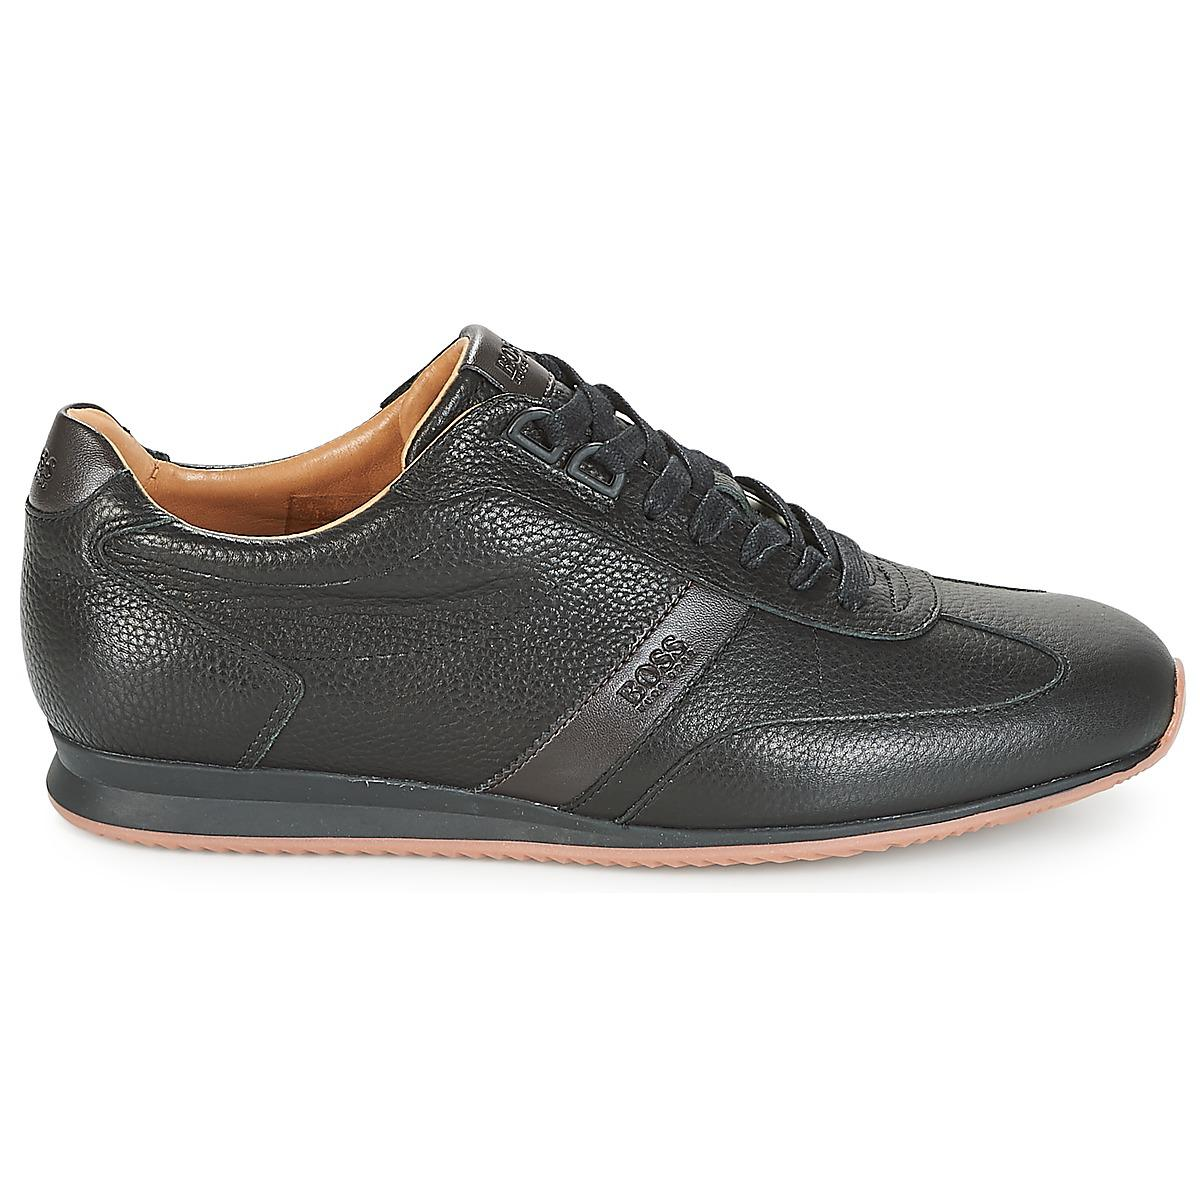 c3fe47eea8e BOSS by Hugo Boss Orland Lowp Tb Shoes (trainers) in Black for Men ...